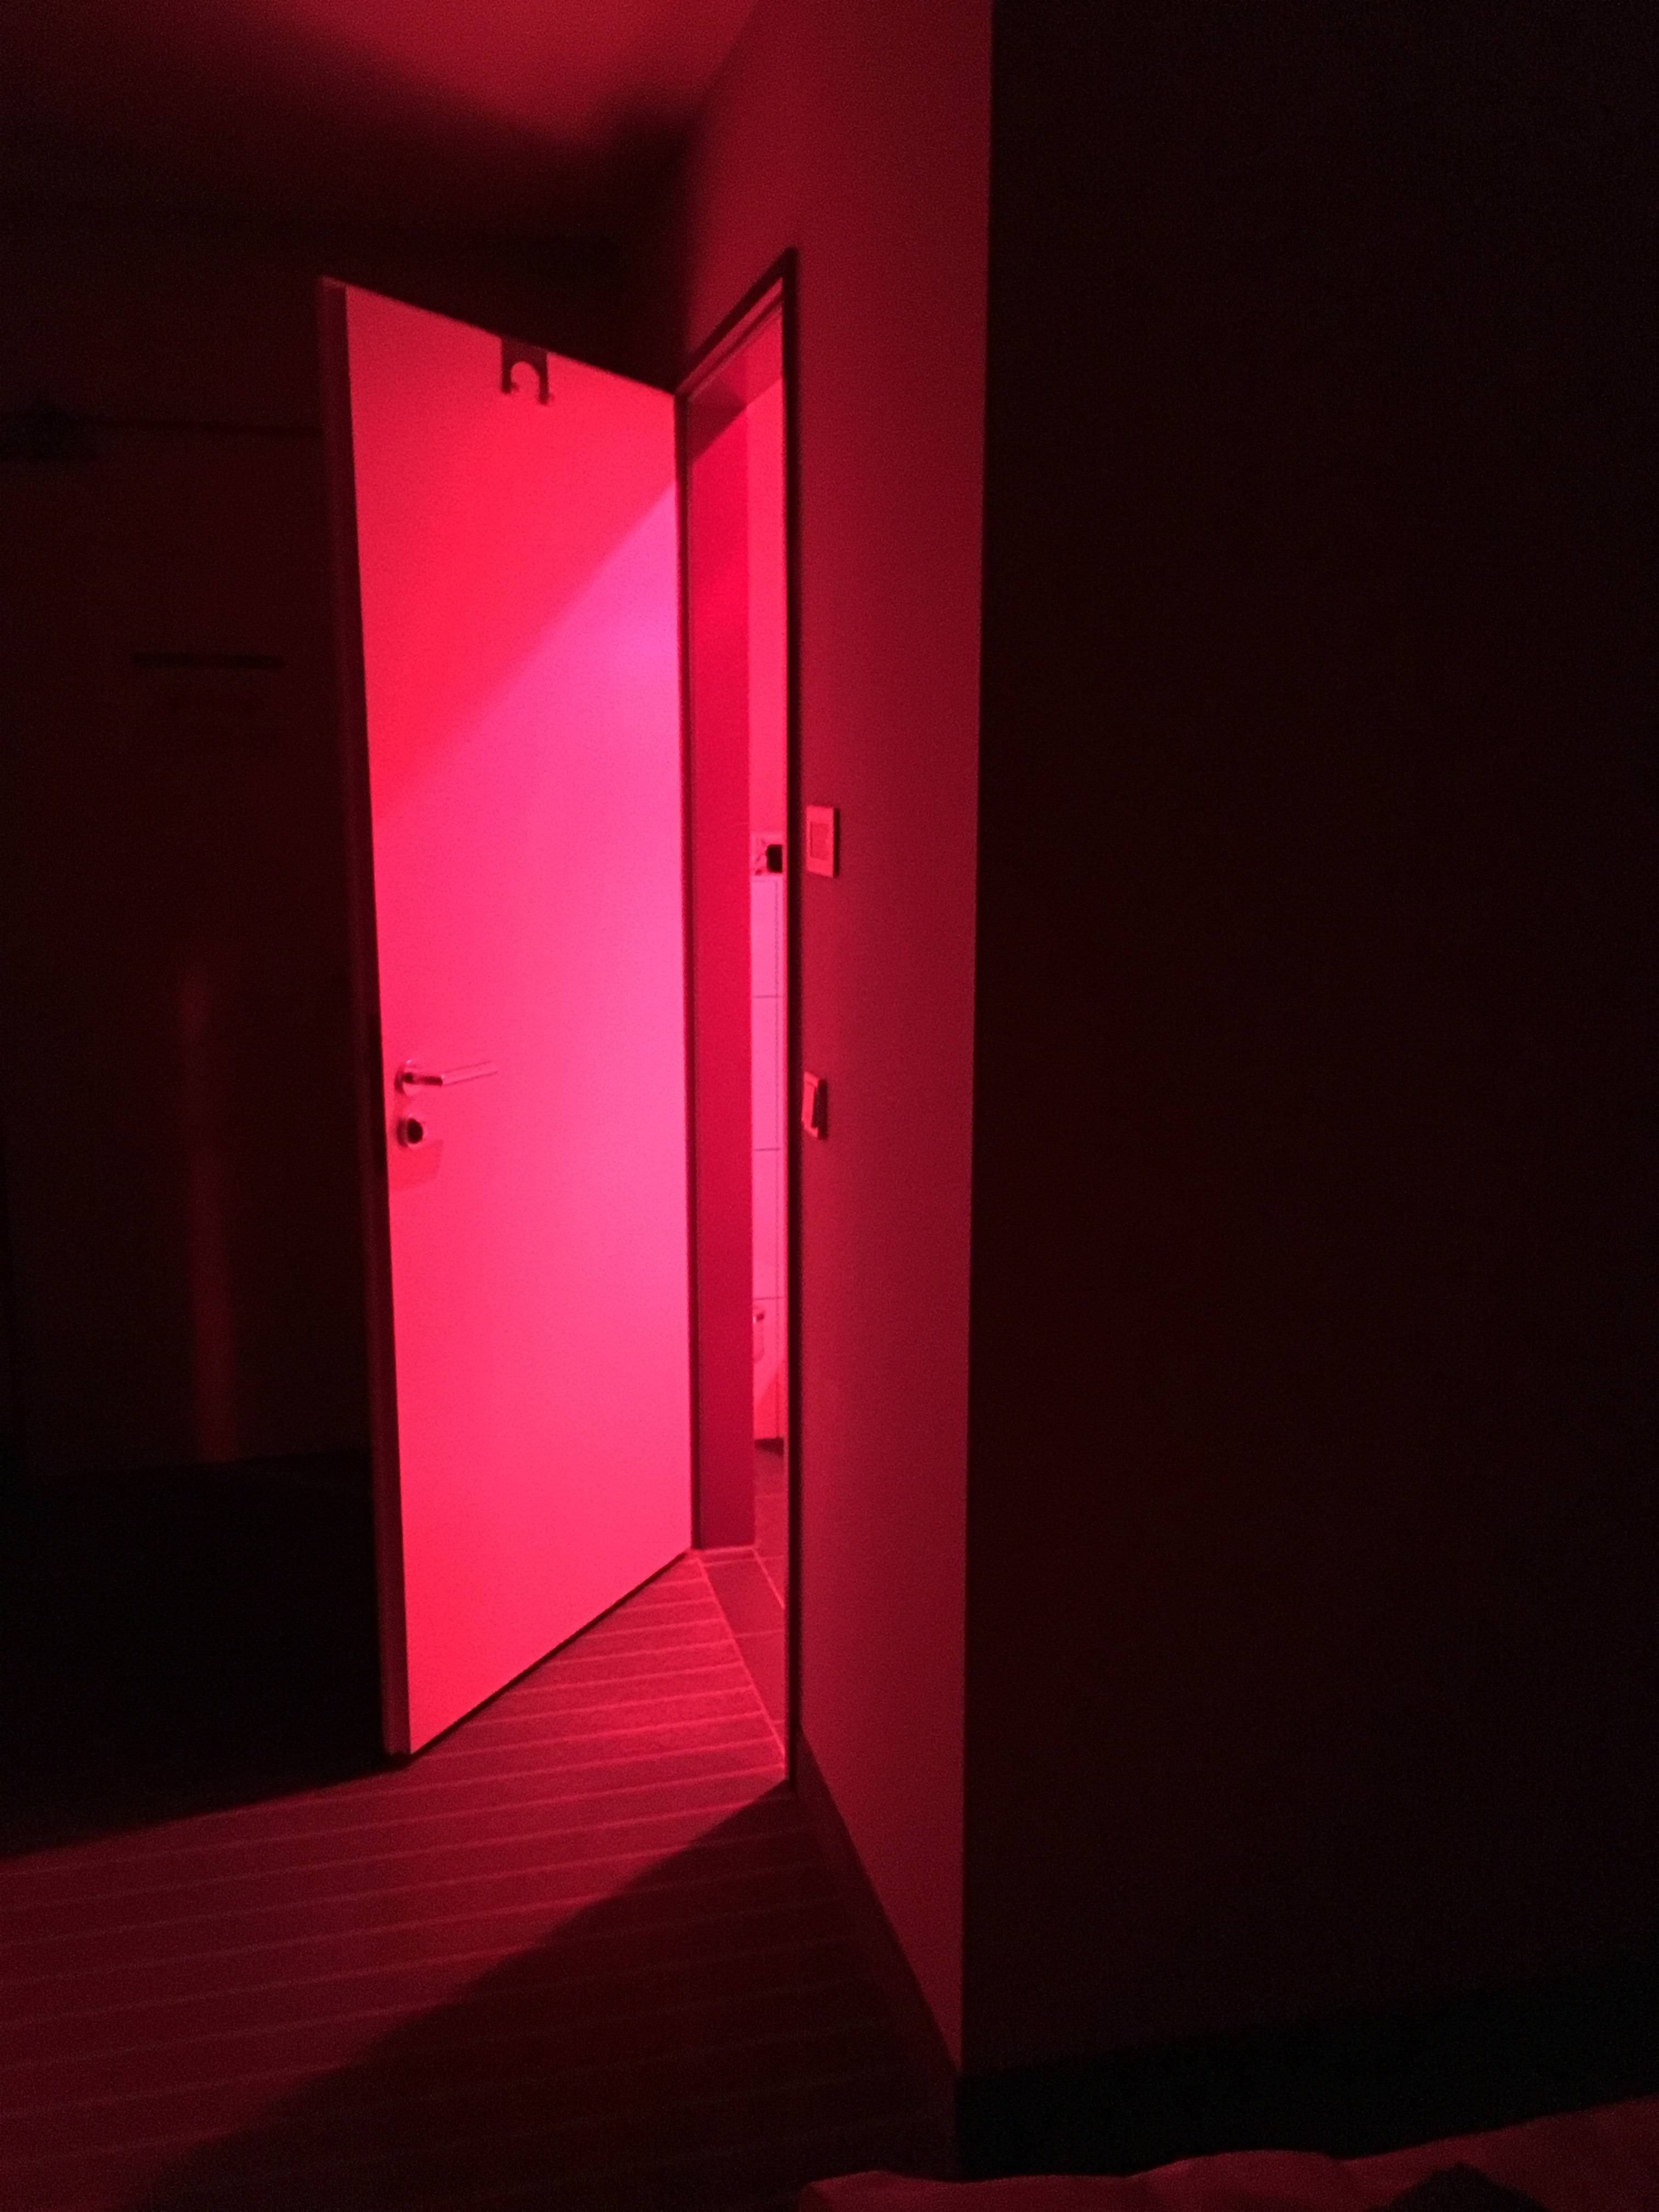 The Hotel Where I Stayed For The Night Had A Red Light In The Bathroom So You Won T Be Bothered By A Bright White Light When White Light Bright White Light